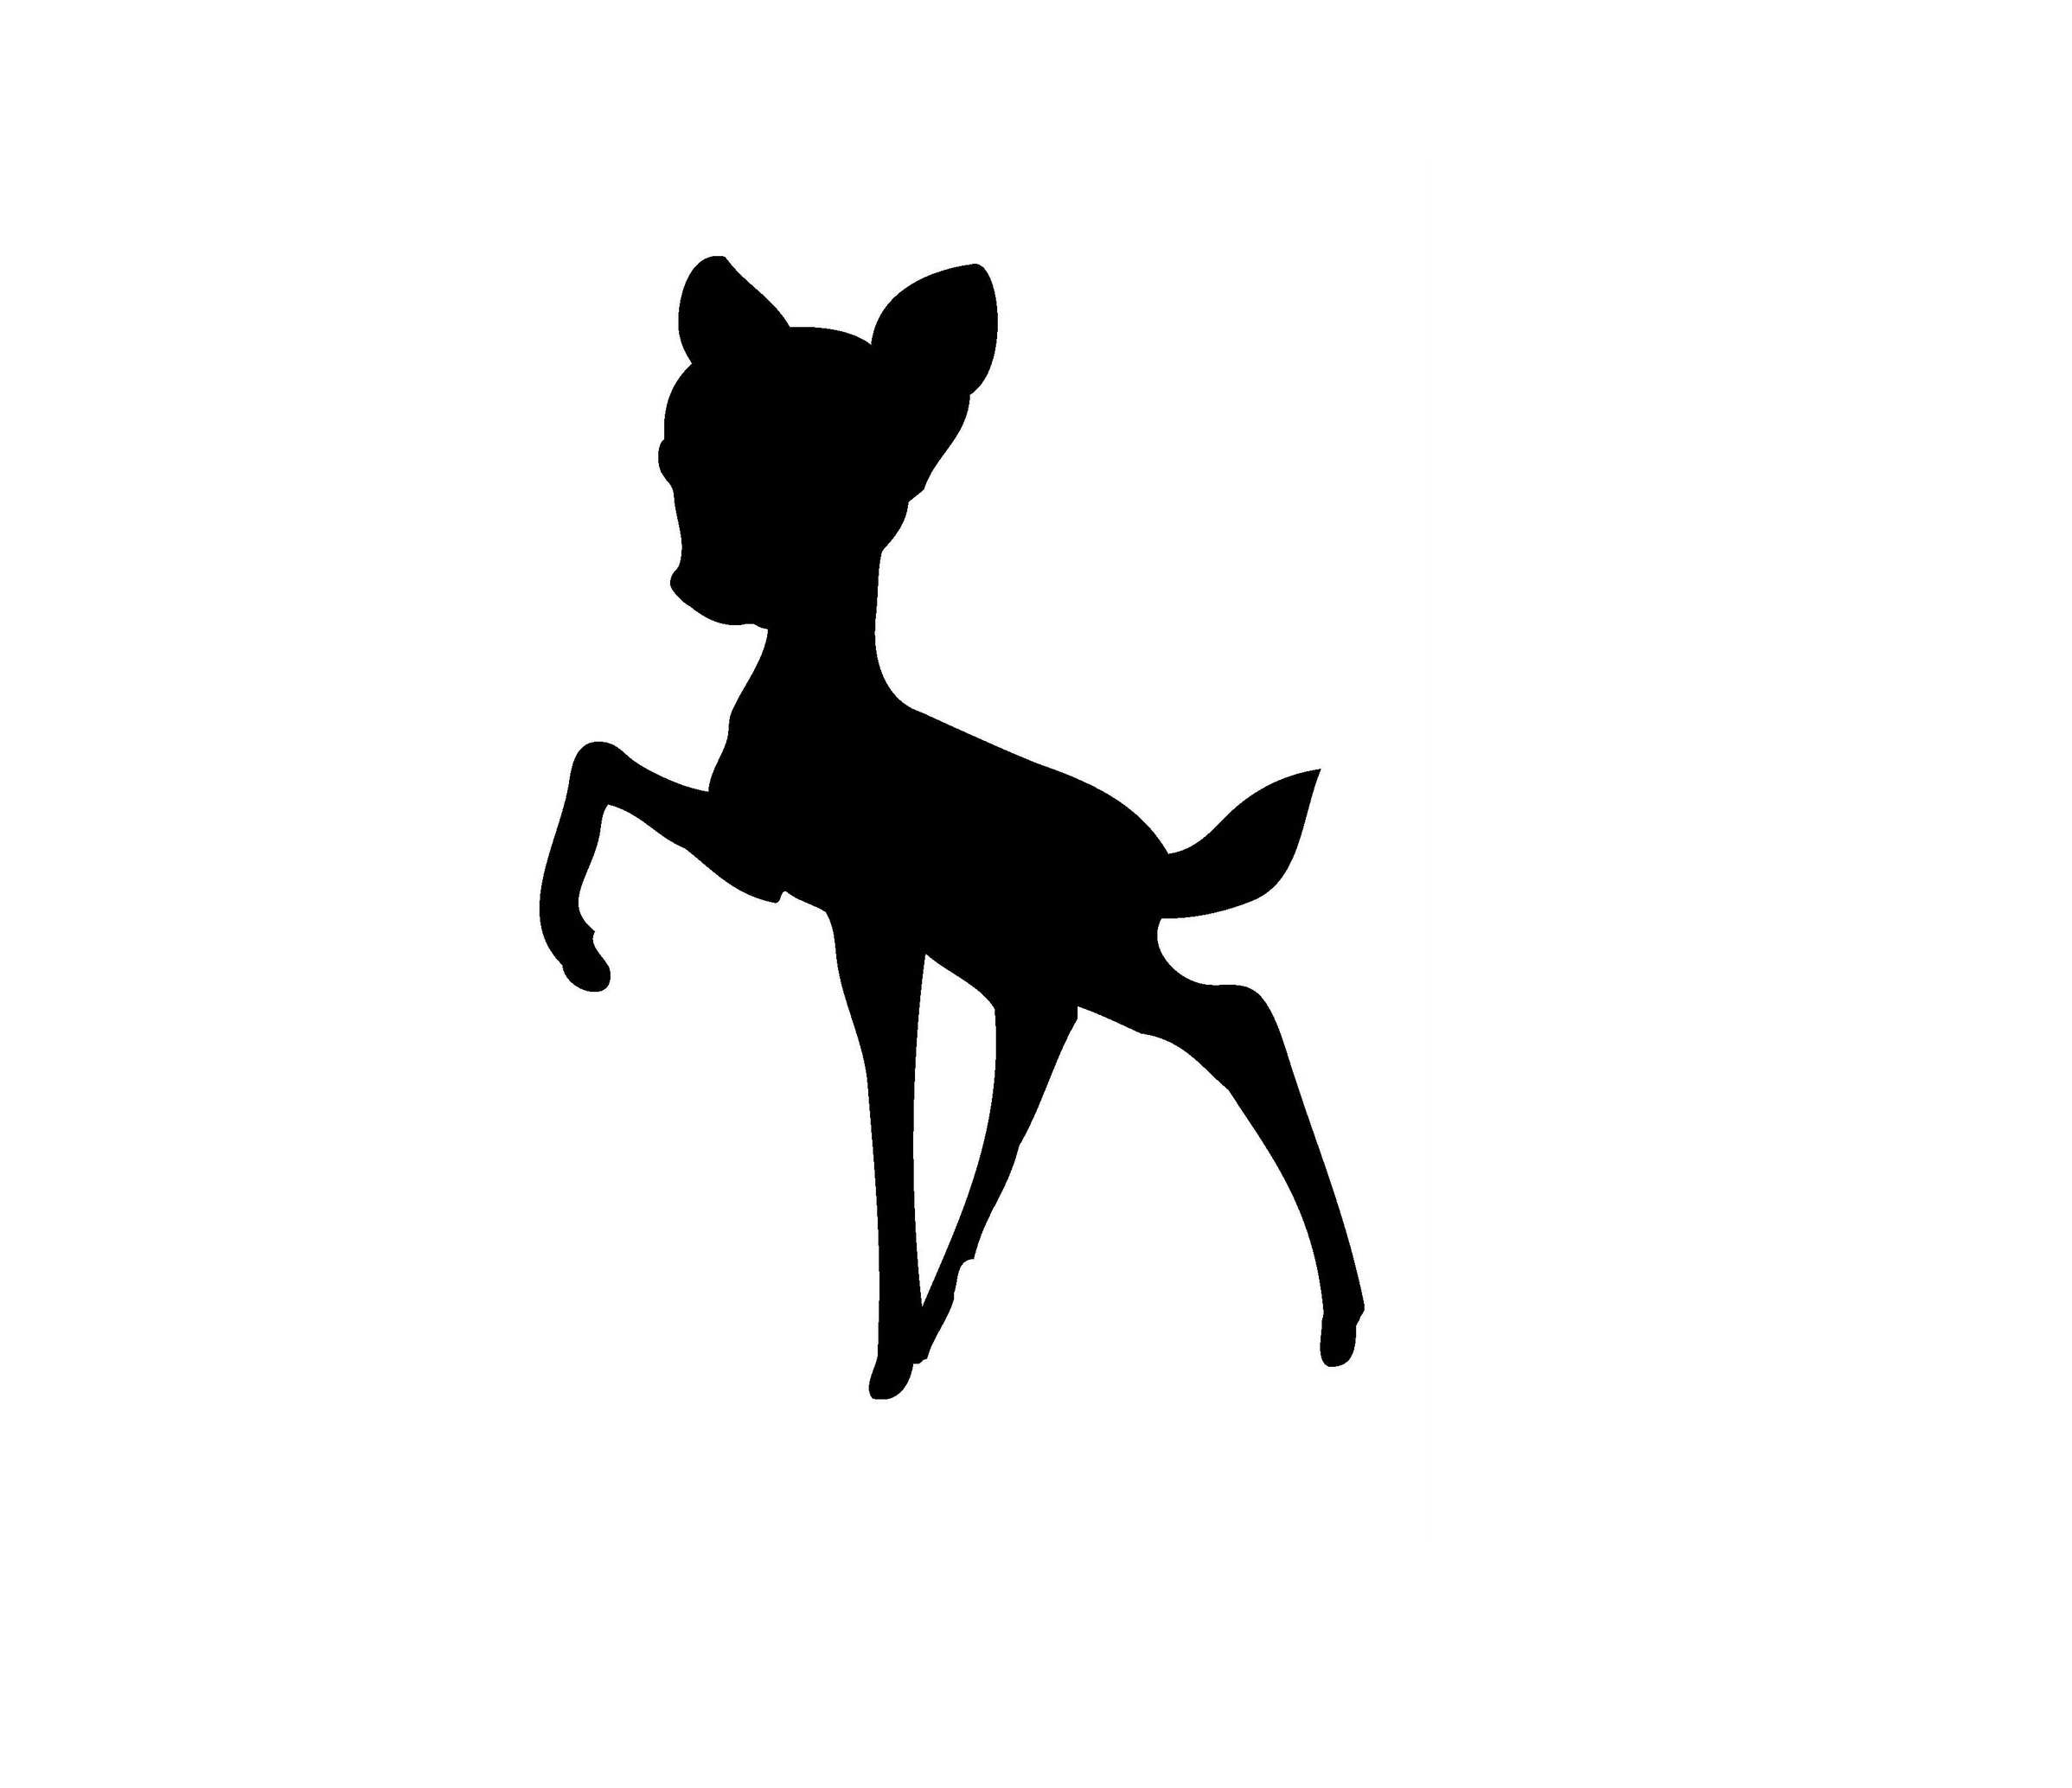 can you name the disney character from the silhouette playbuzz